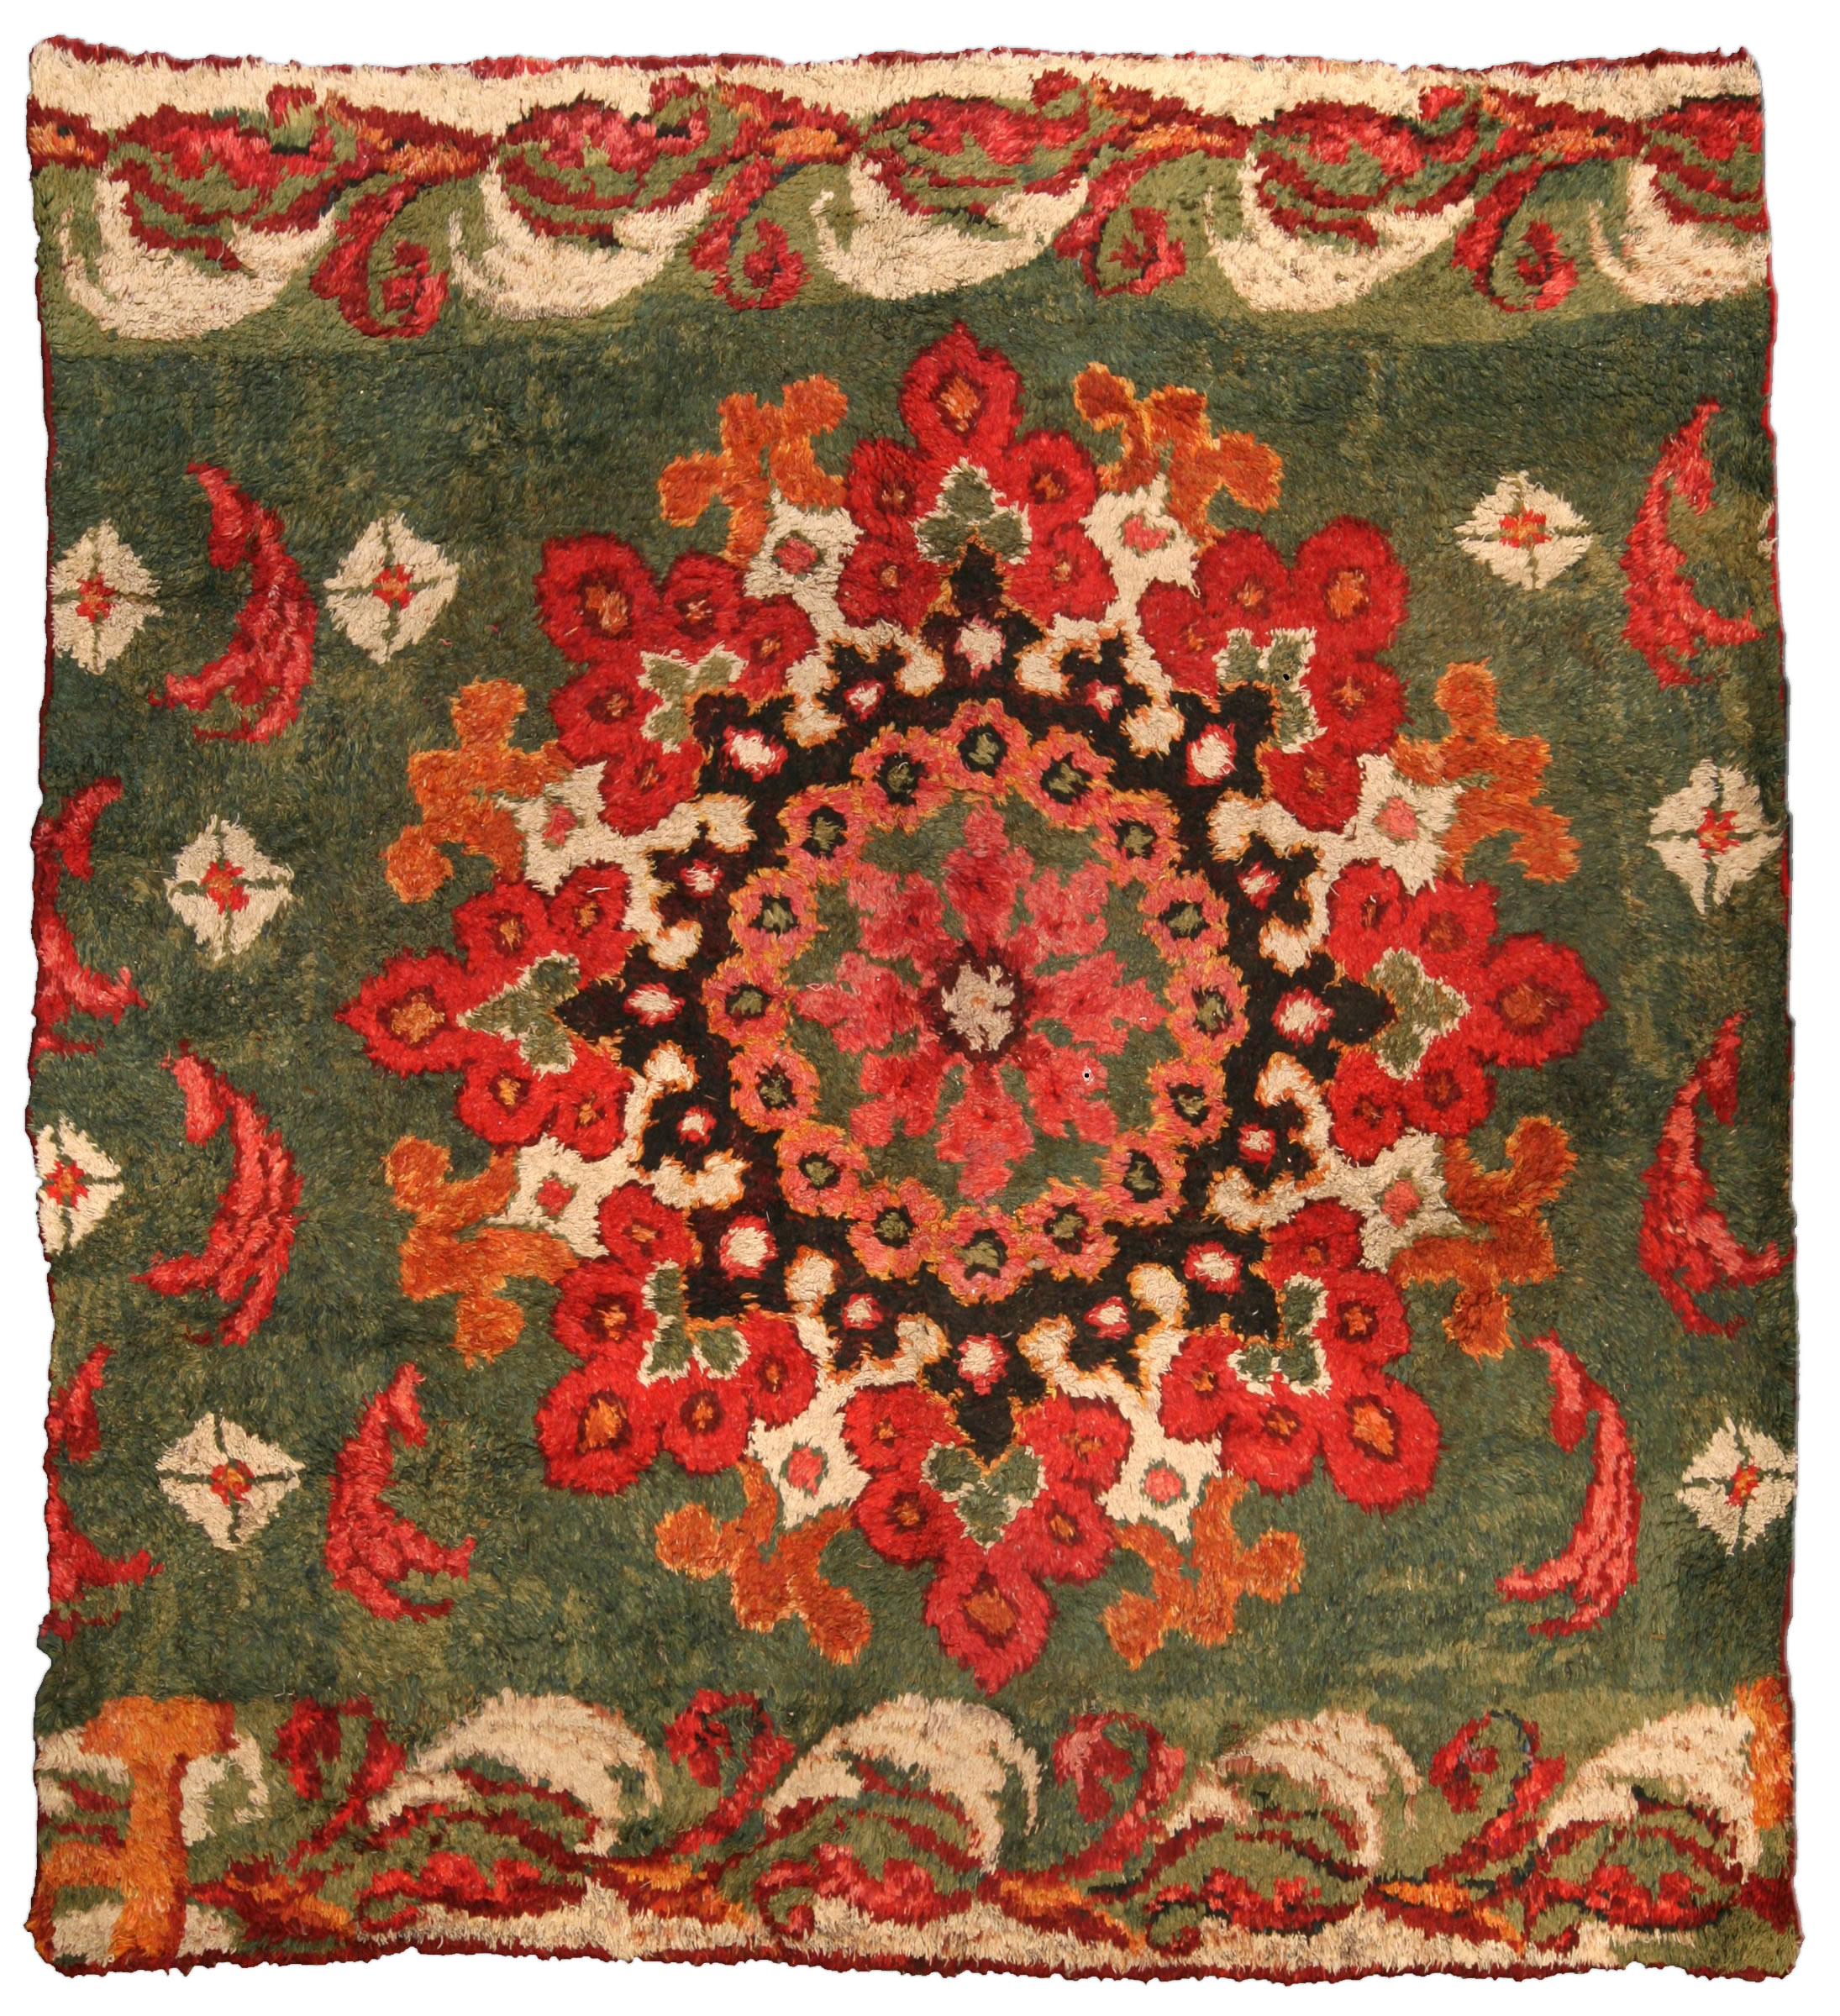 French Savonnerie Rugs Amp Carpets For Sale Antique